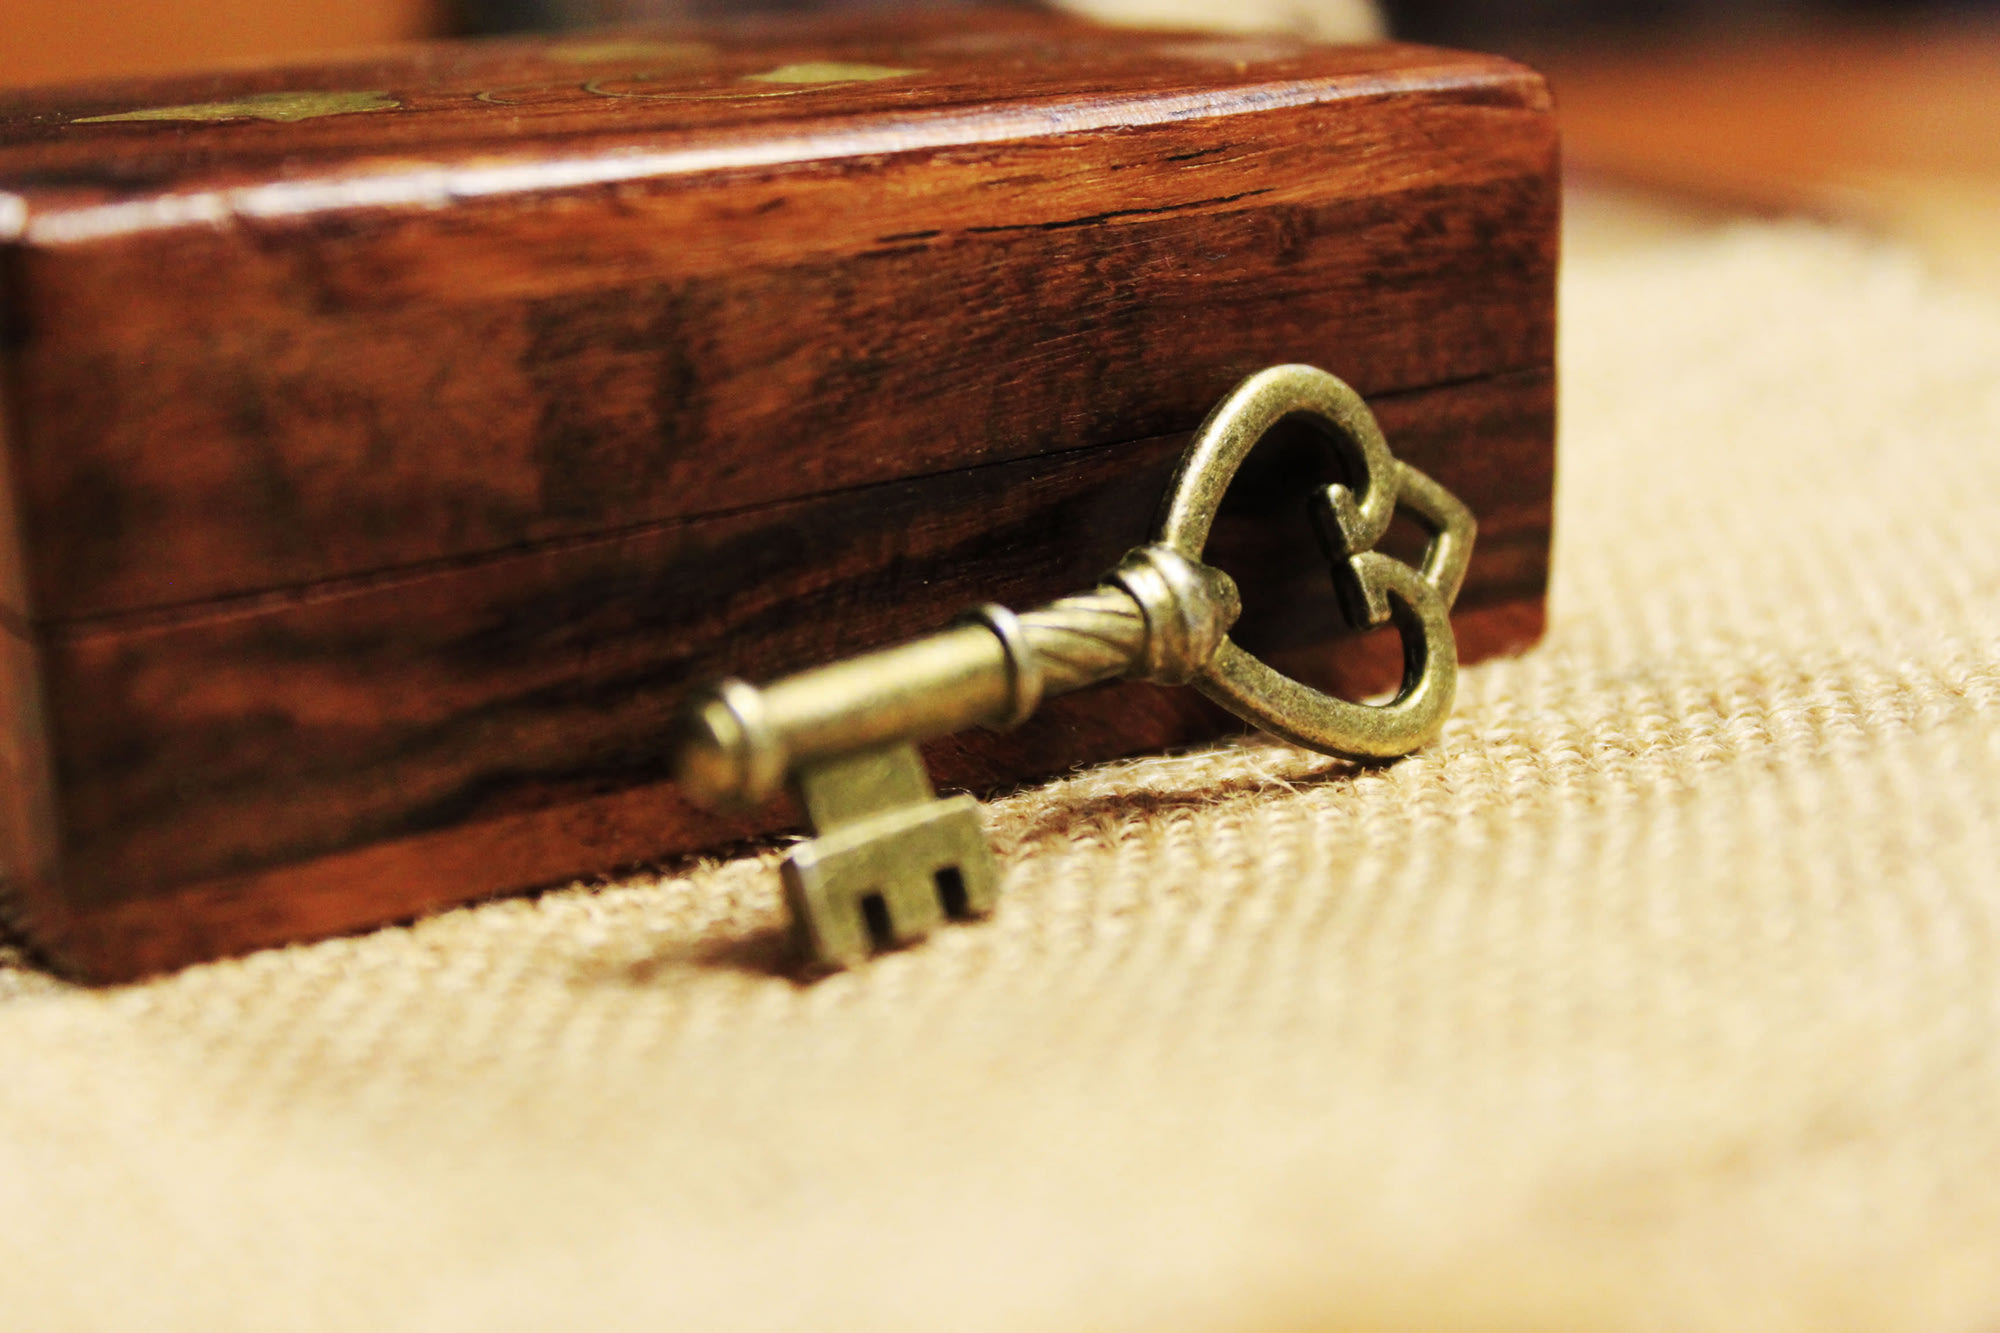 Brass key and wooden box